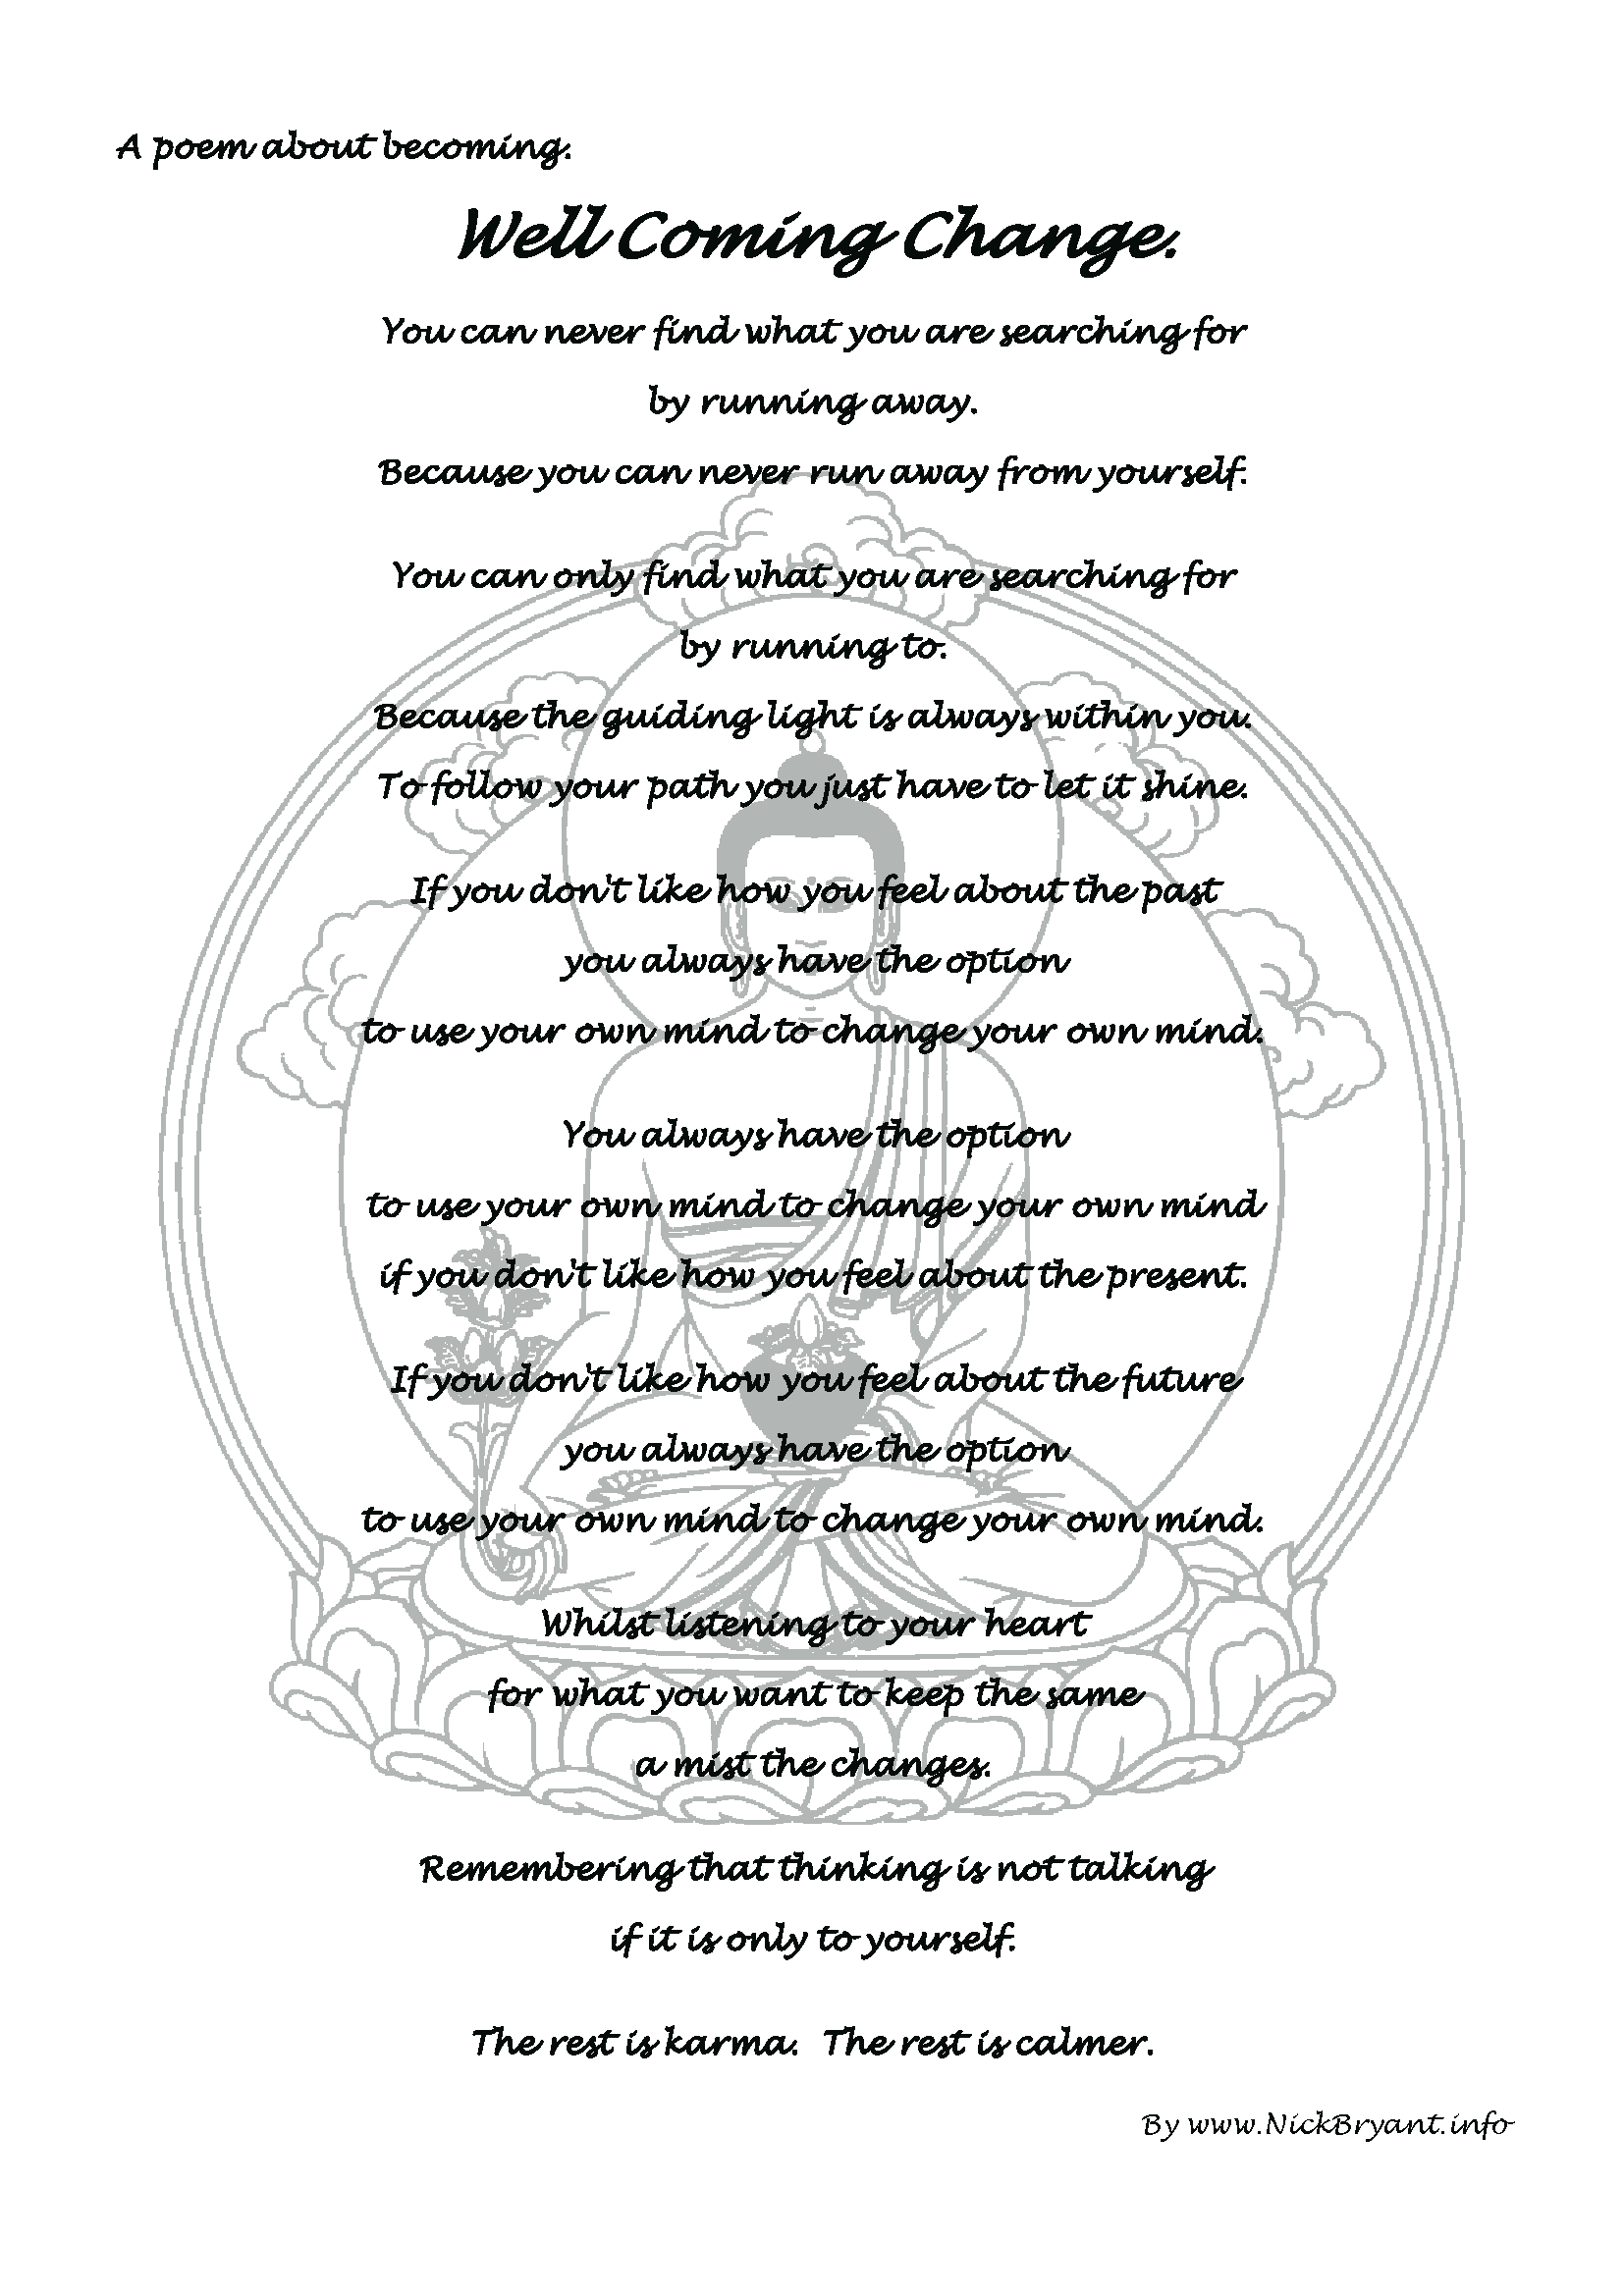 Well Coming Change A Poem About Becoming